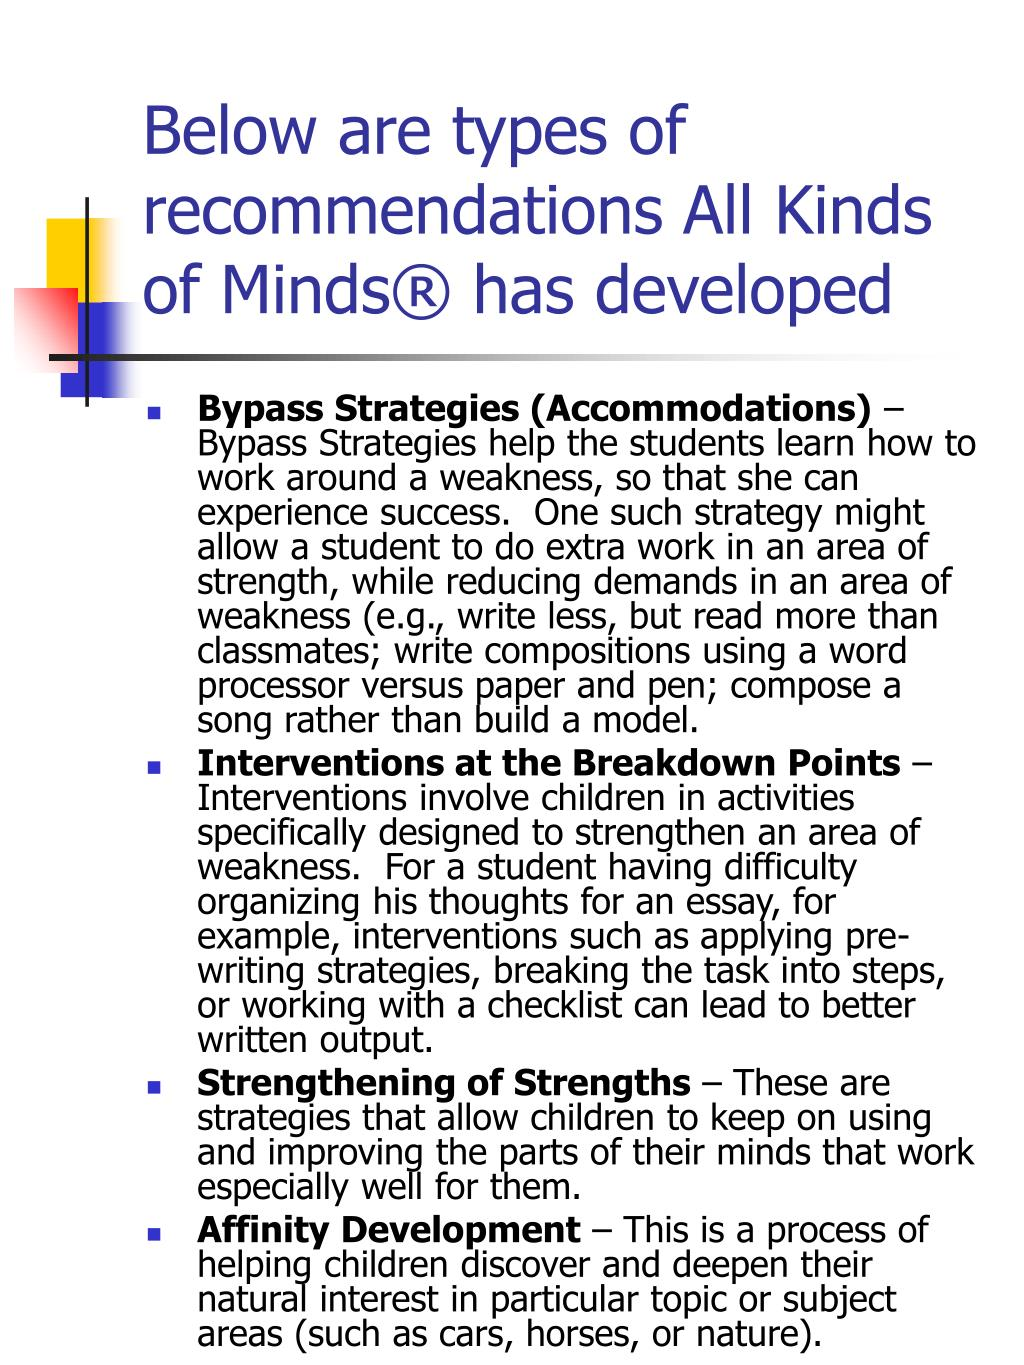 Below are types of recommendations All Kinds of Minds® has developed